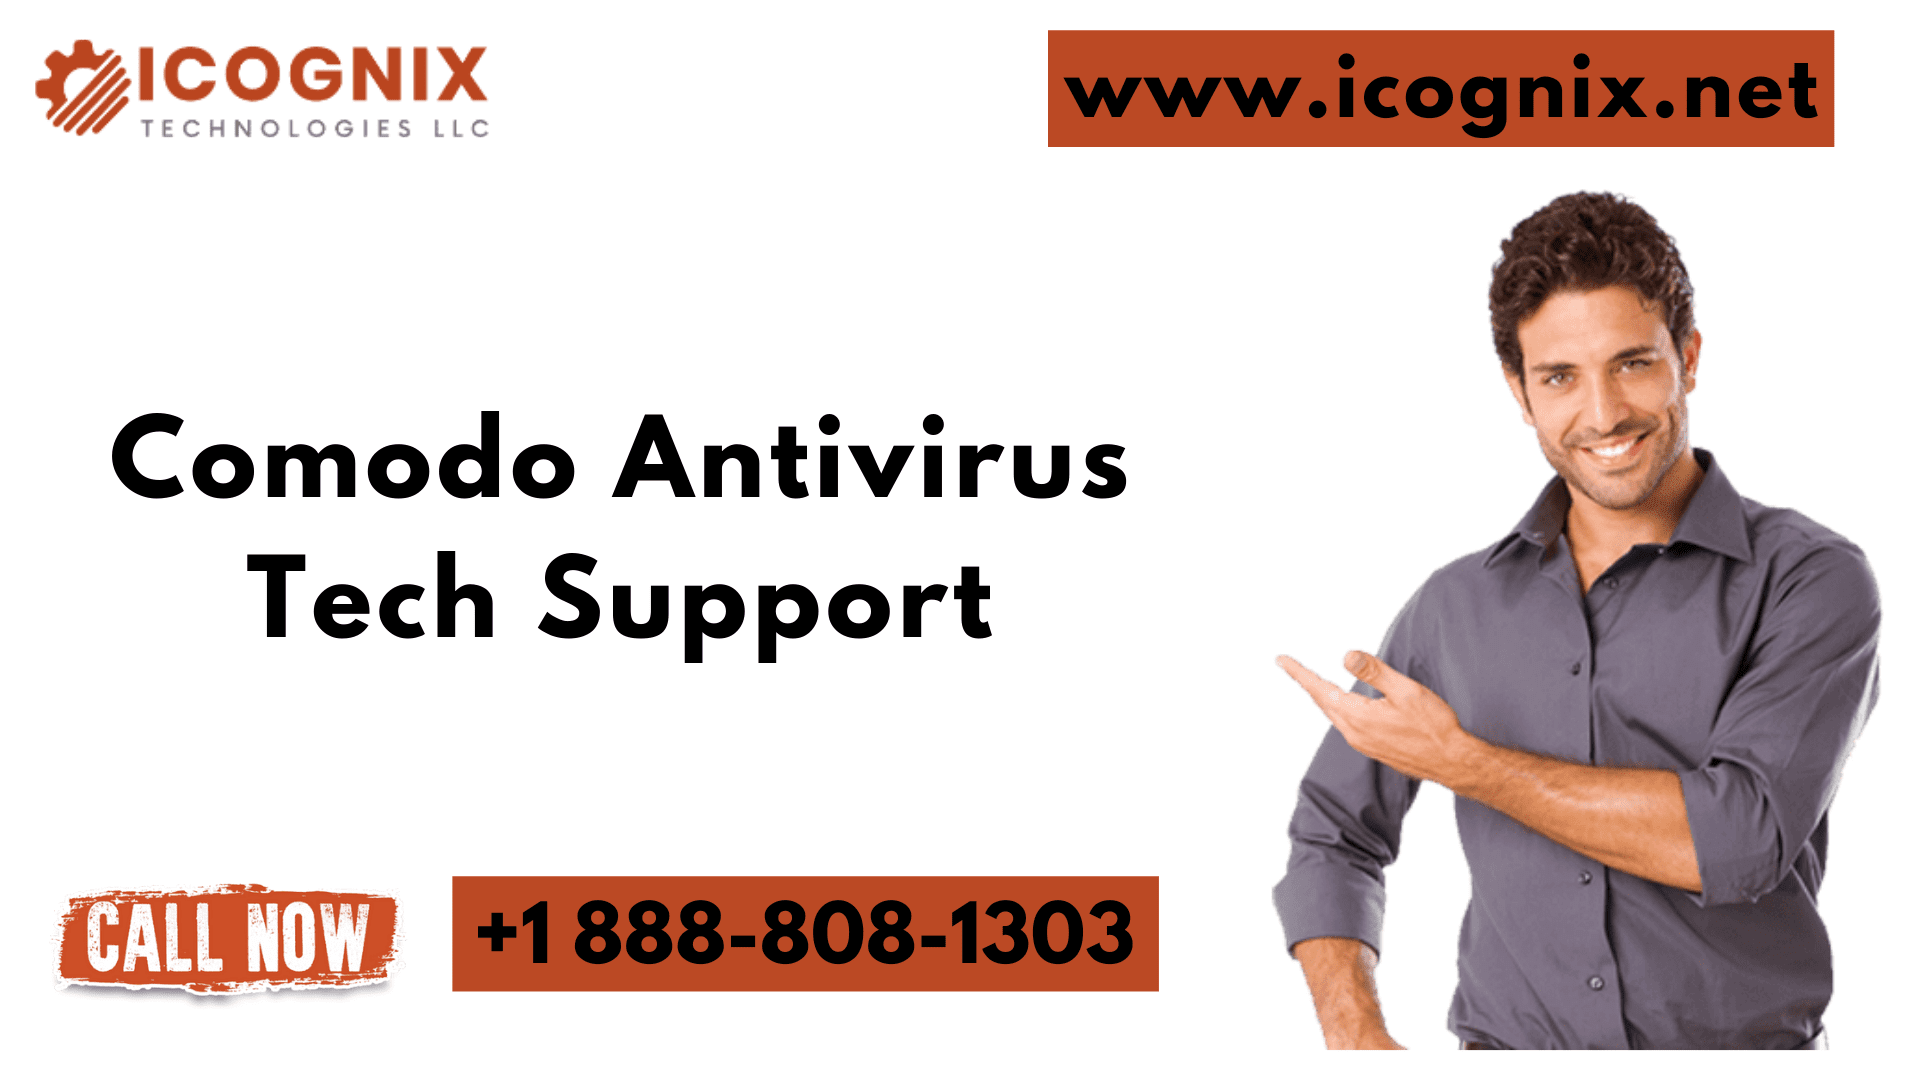 Comodo Antivirus Tech Support